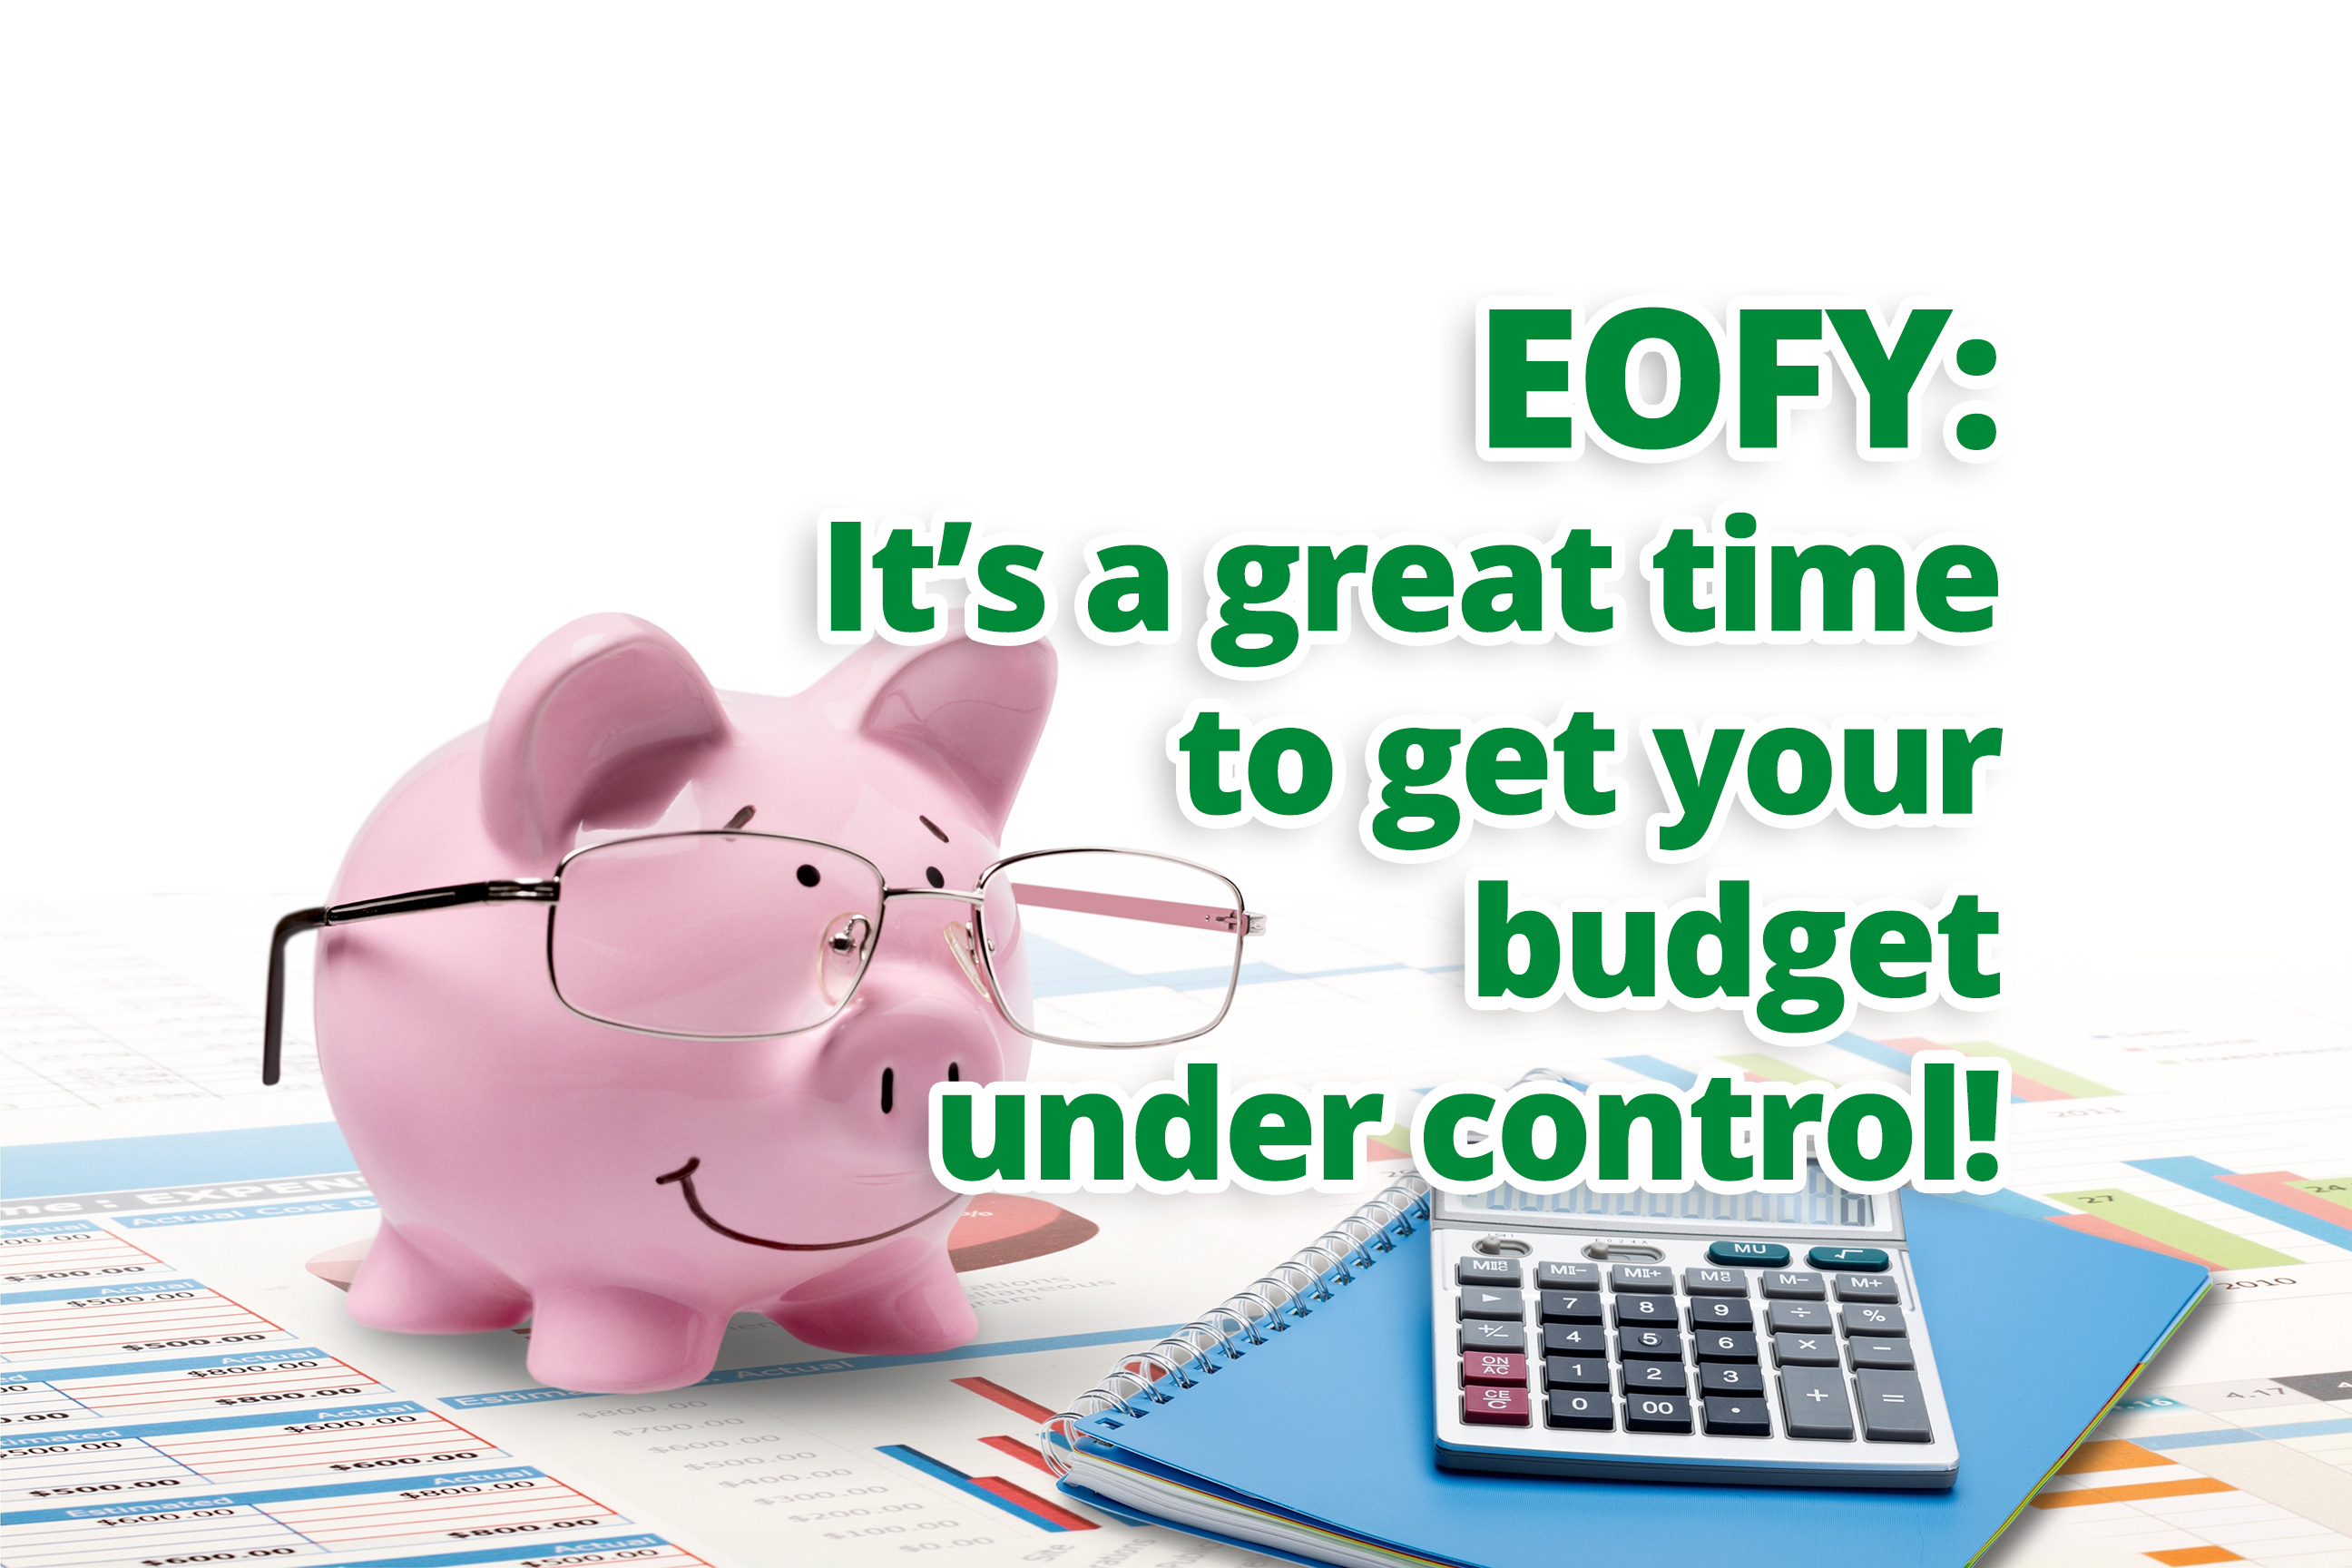 EOFY: It's a great time to get your budget under control!